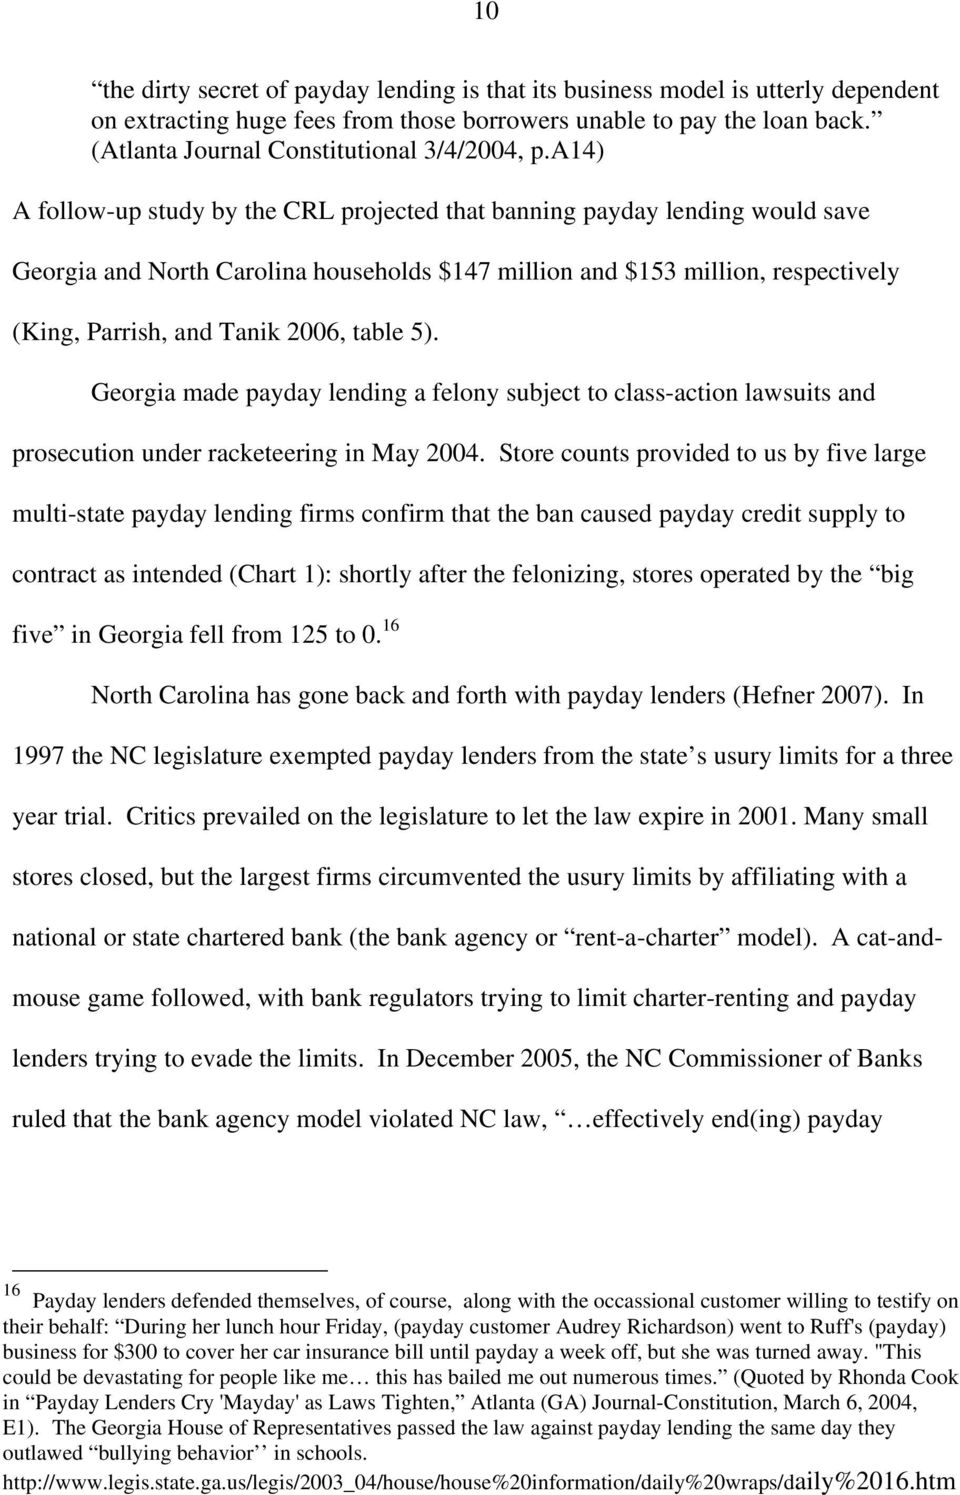 a14) A follow-up study by the CRL projected that banning payday lending would save Georgia and North Carolina households $147 million and $153 million, respectively (King, Parrish, and Tanik 2006,